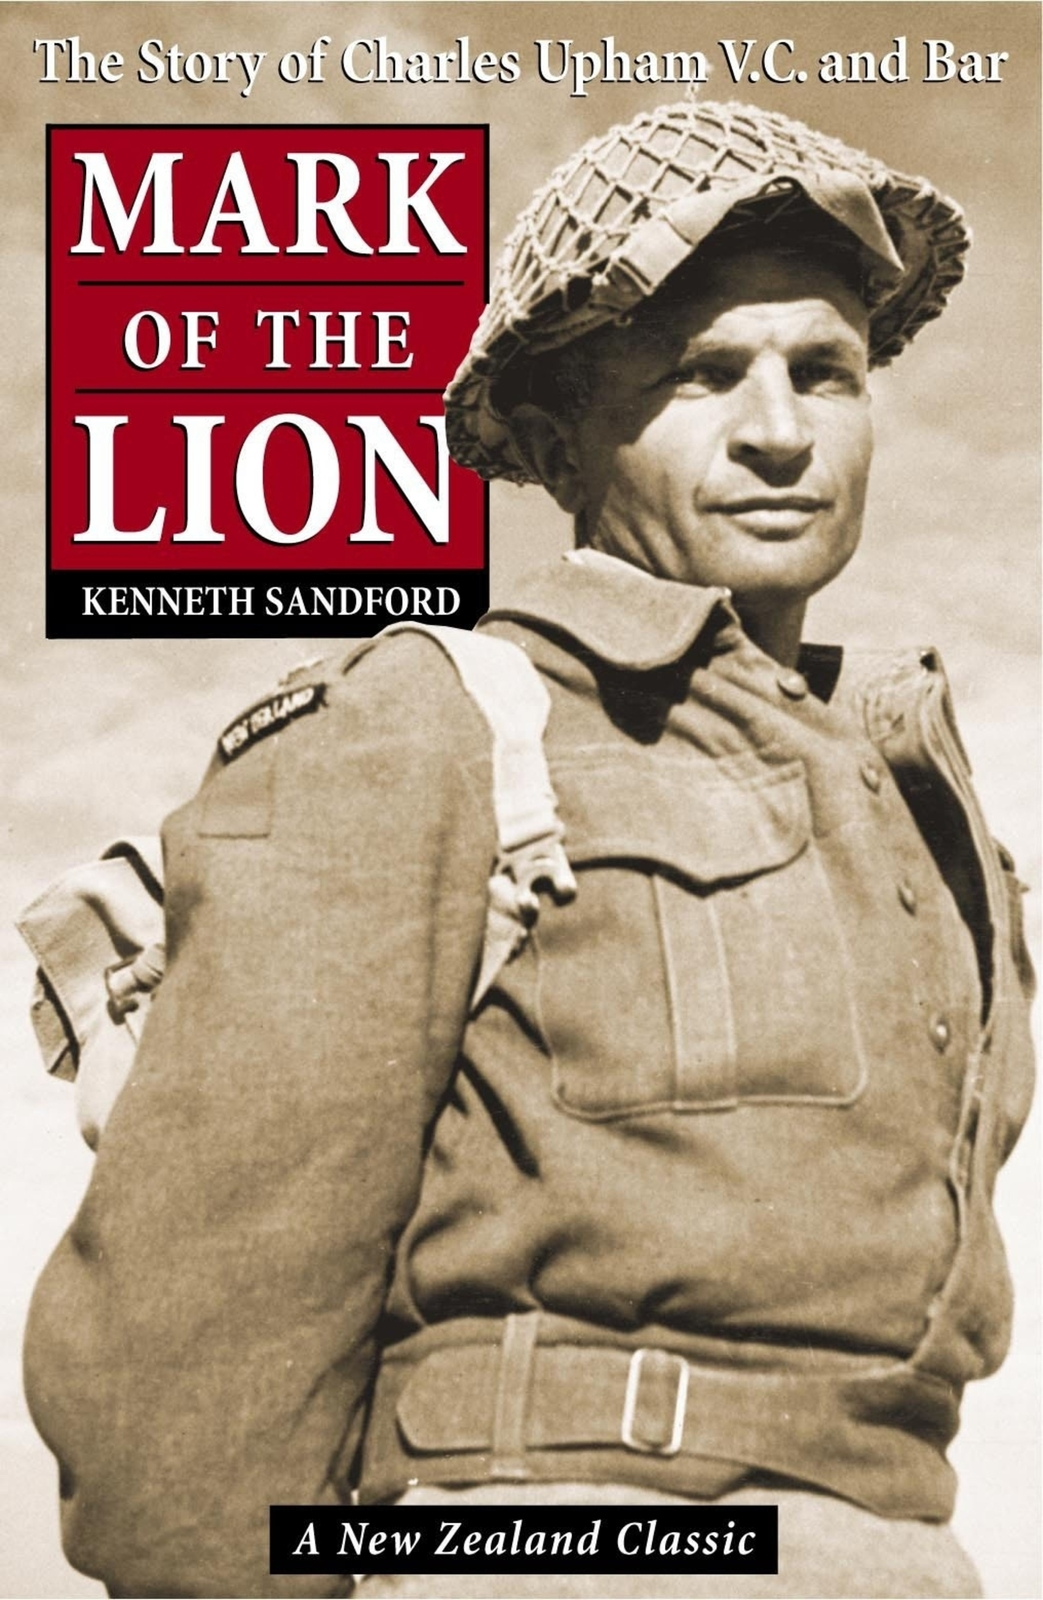 Mark of the Lion: The Story of Charles Upham VC and Bar by Kenneth Sandford image